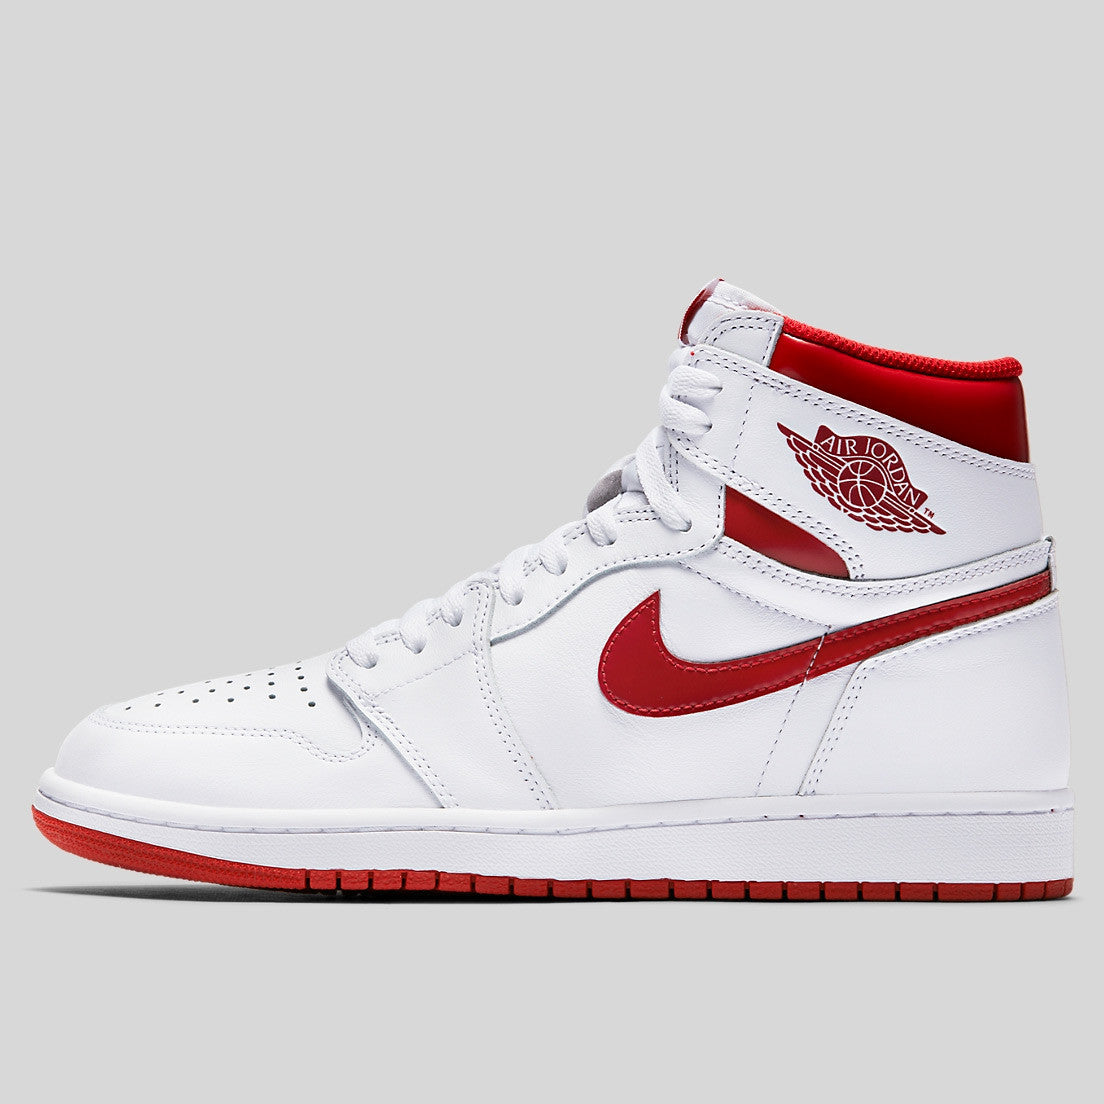 726e3debba0b Nike Air Jordan 1 Retro High OG White Metallic Red (555088-103 ...